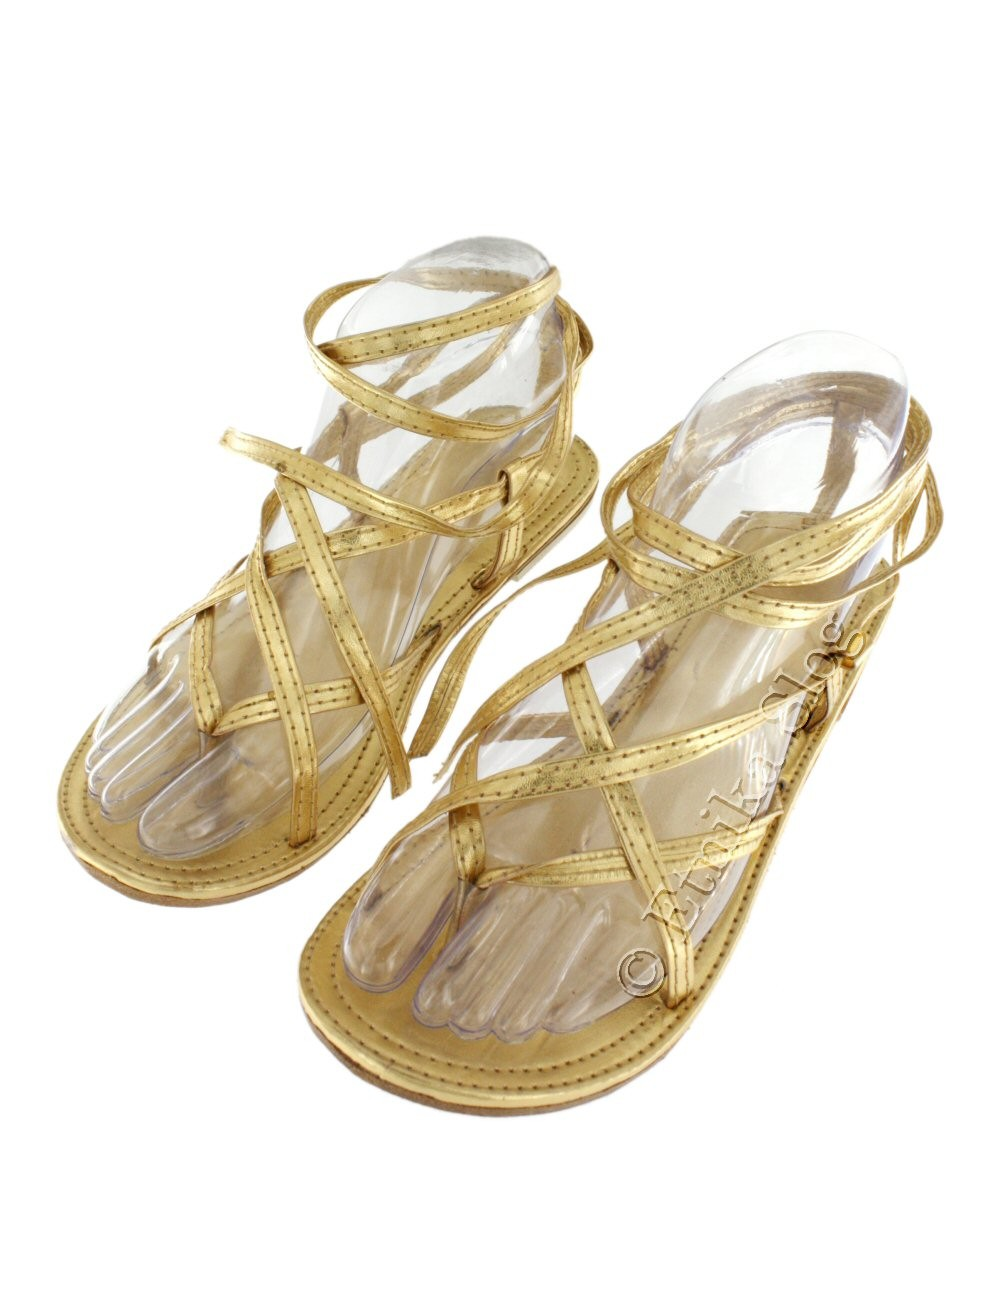 SHOES DV-SN02A - Oriente Import S.r.l.